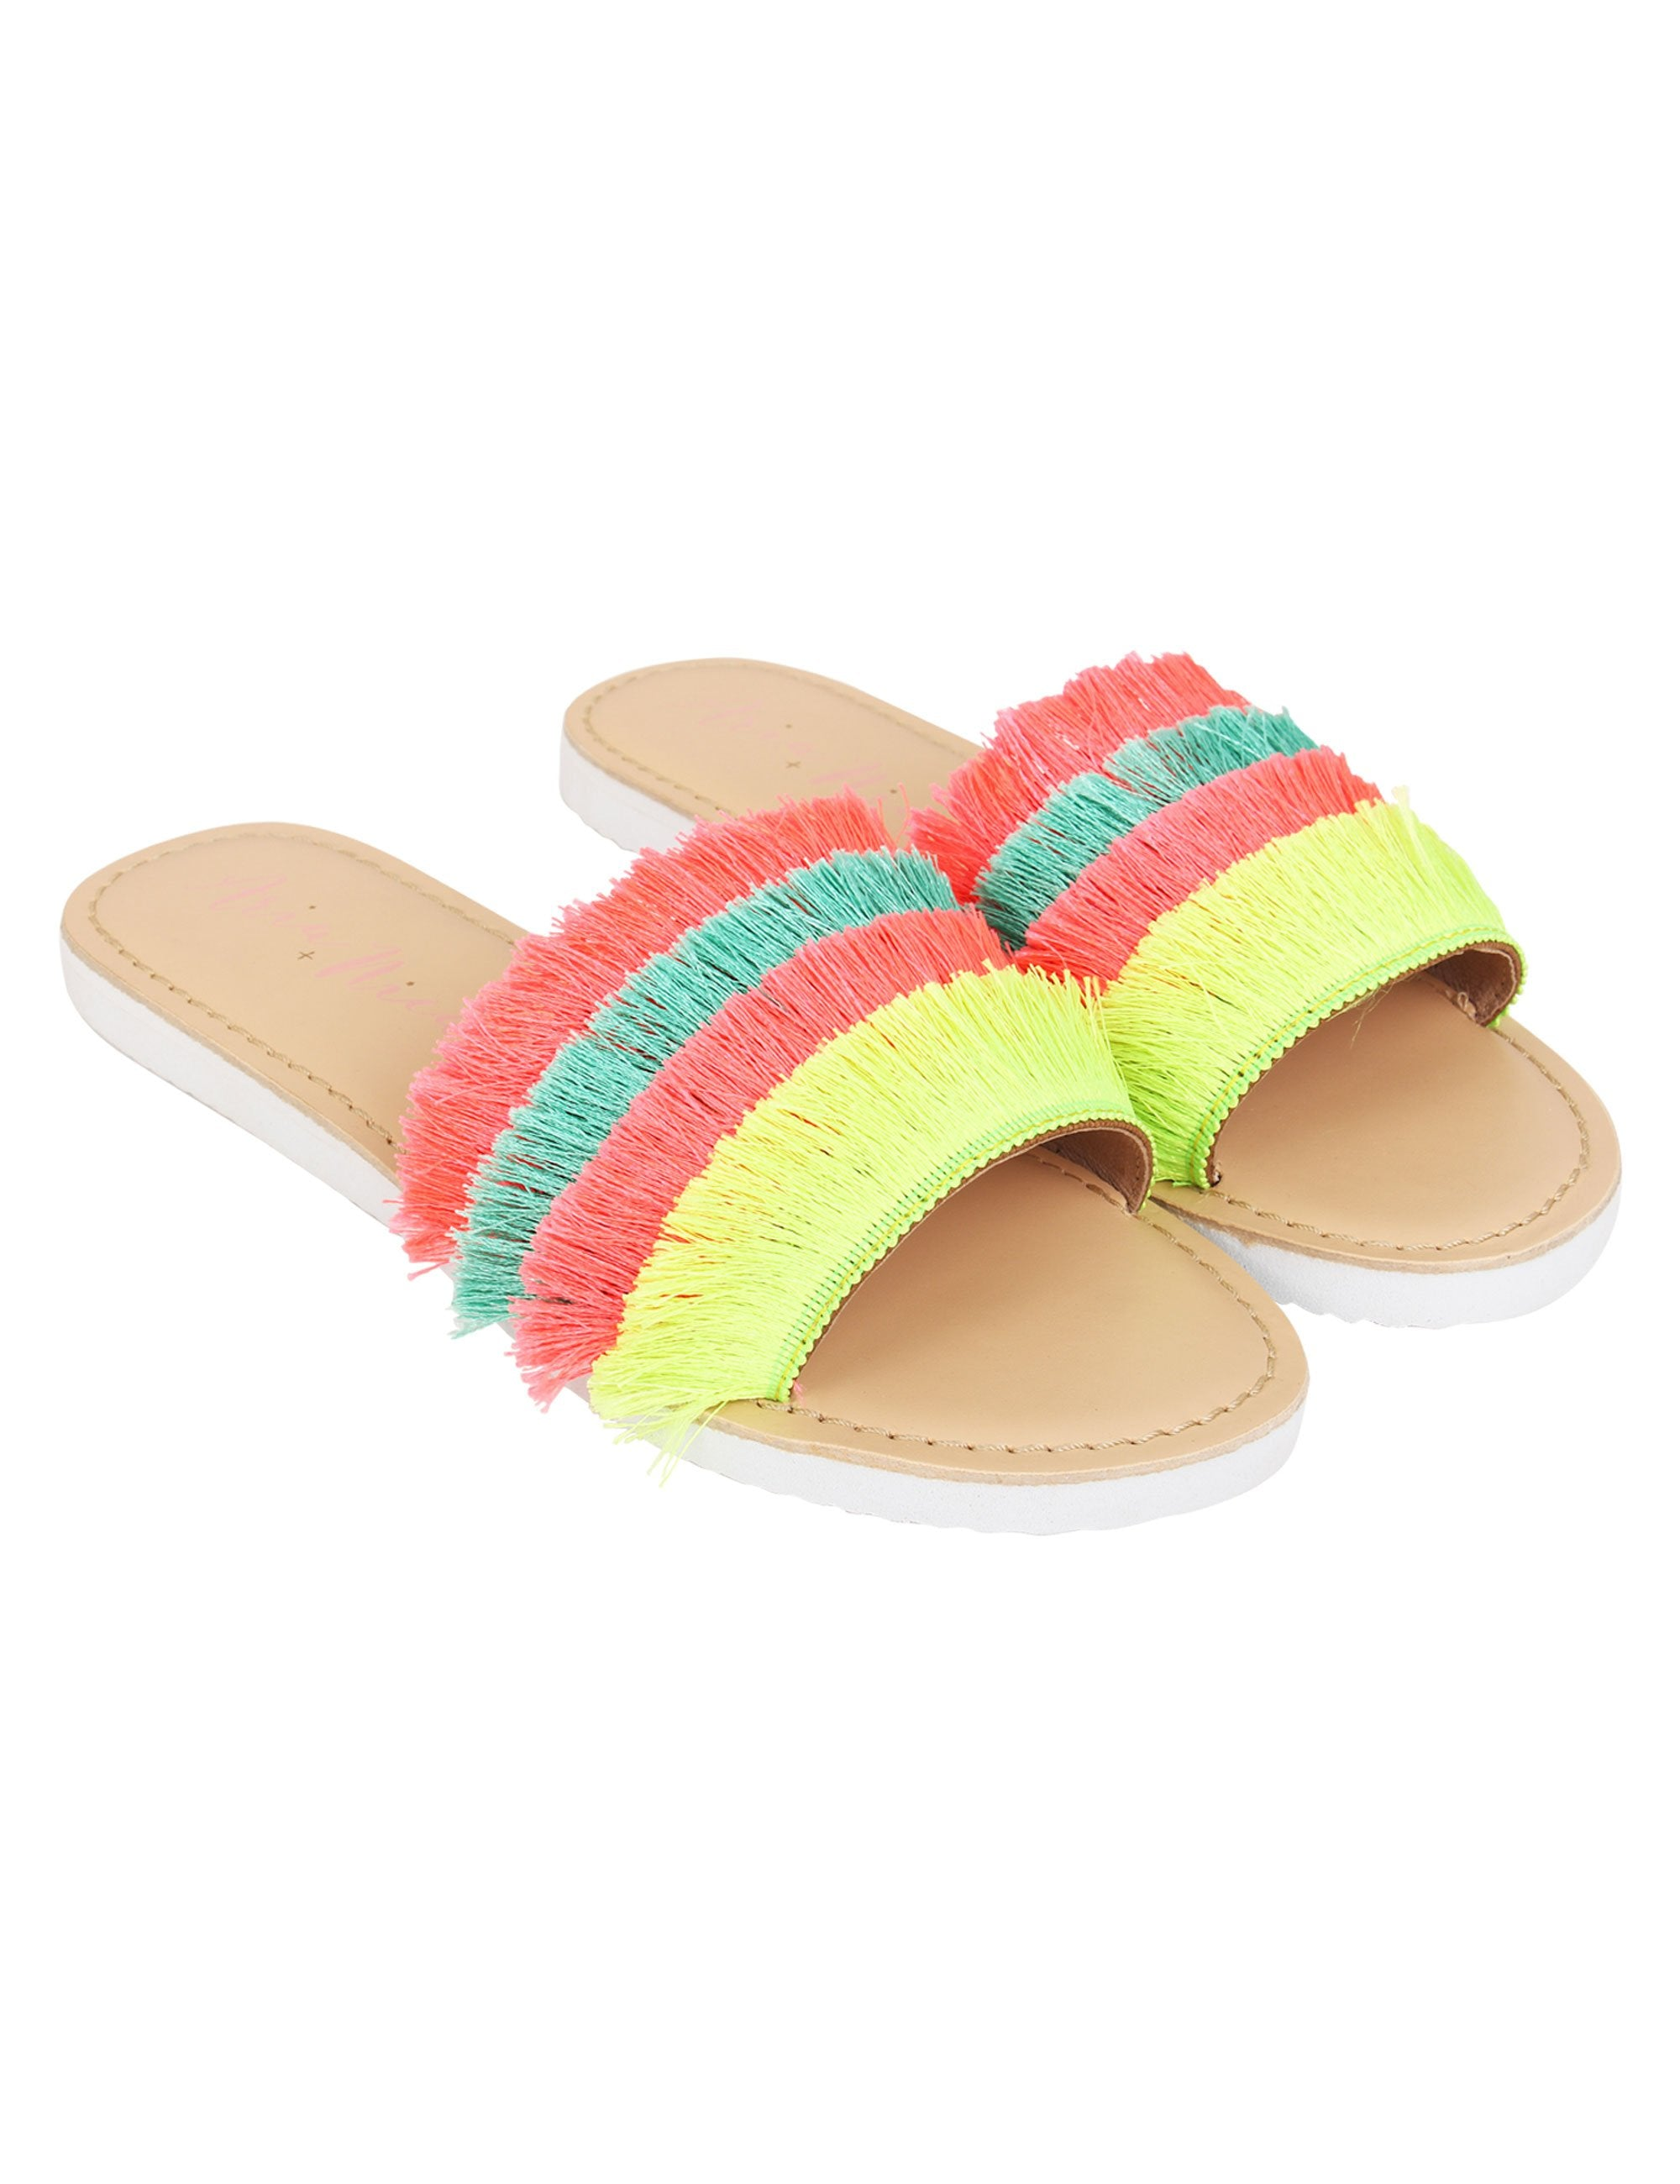 Multi Coloured Flats for Girls